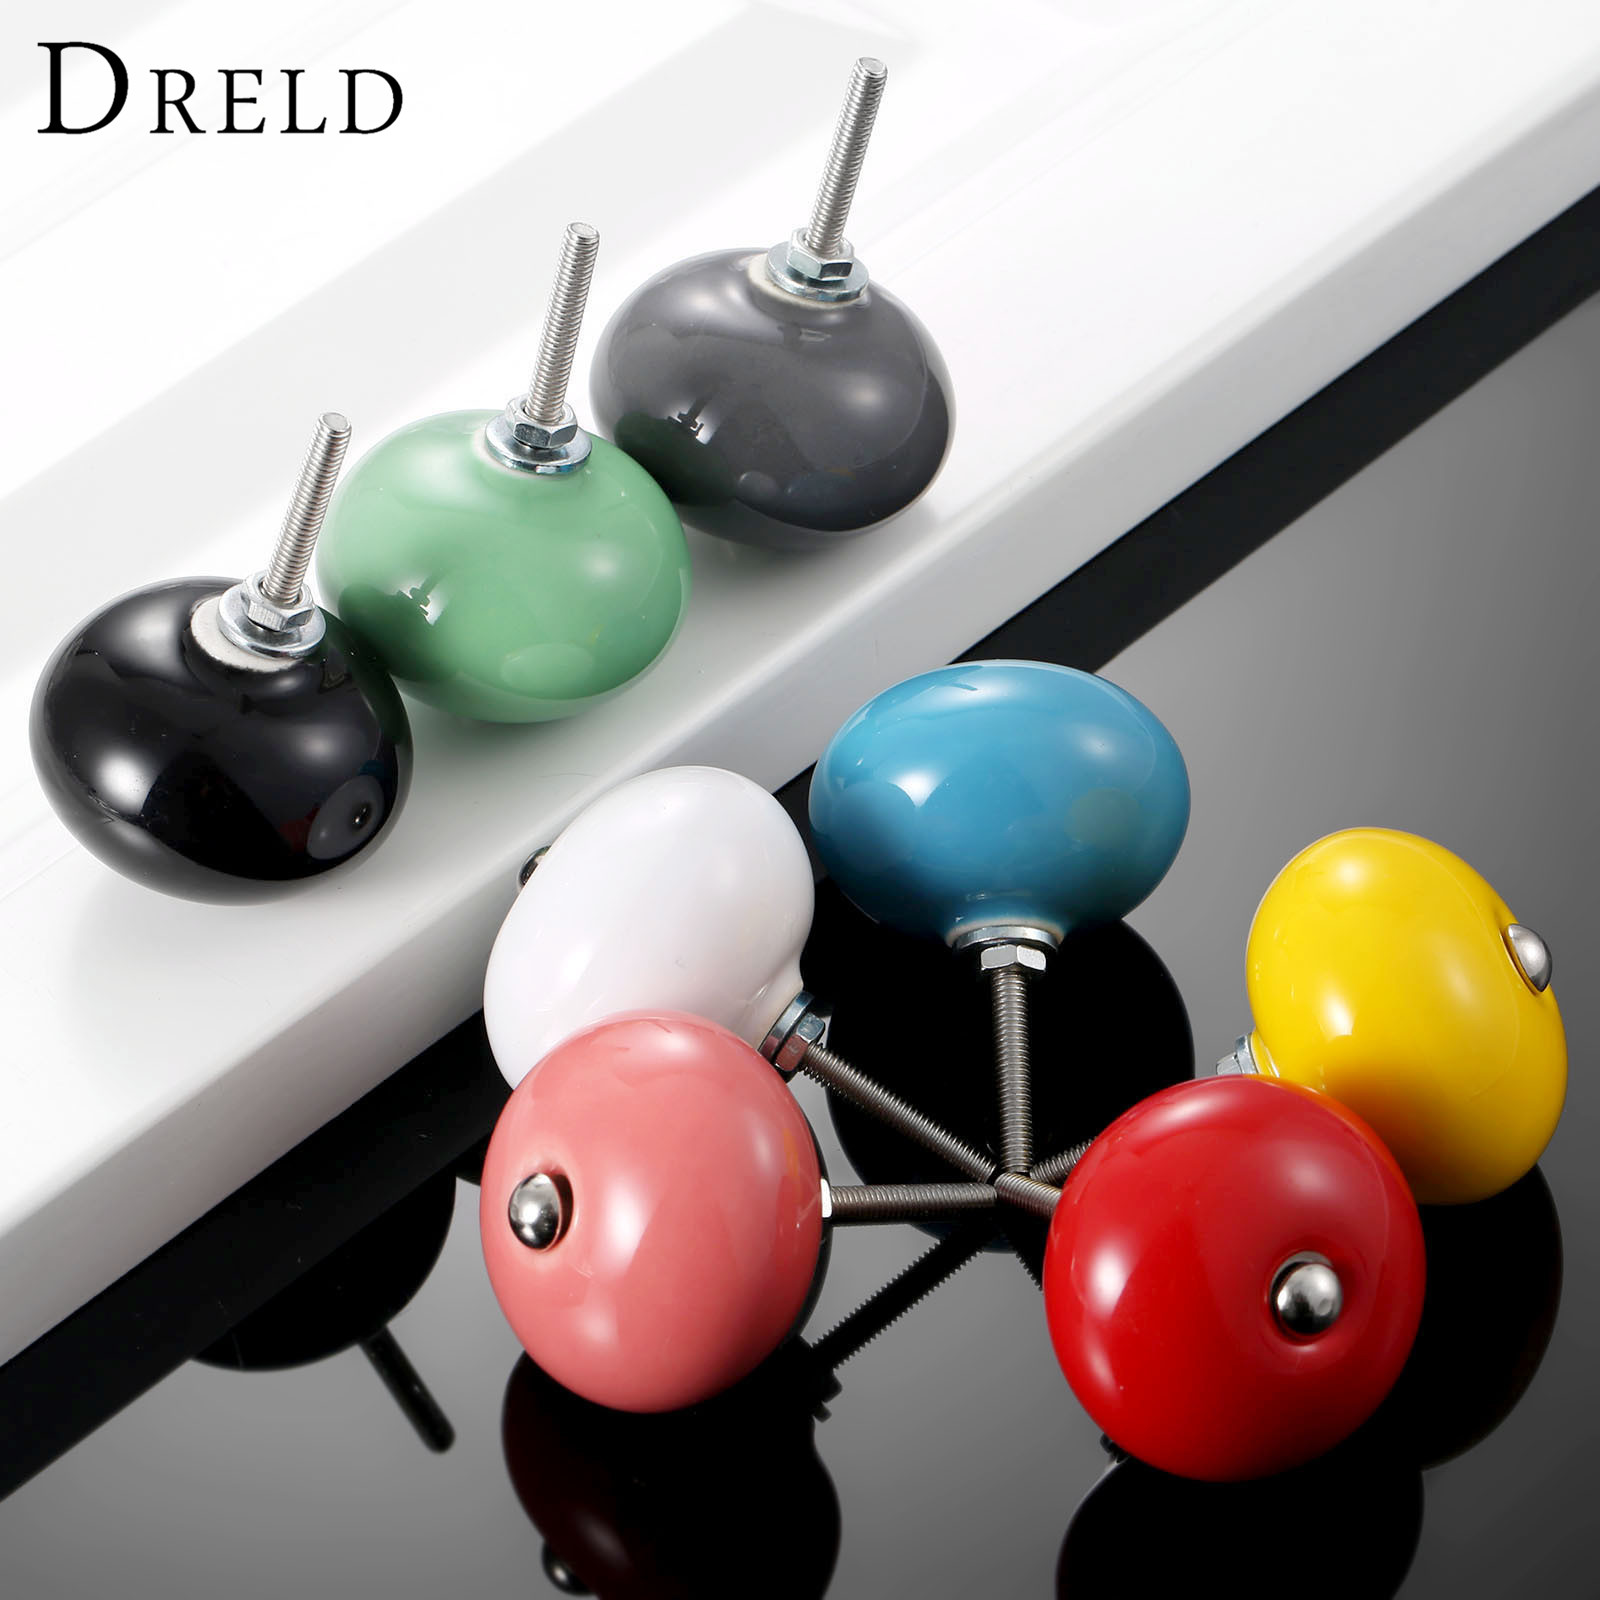 DRELD 1Pc Furniture Handle Round Door Knobs Ceramic Drawer Cabinet Knobs and Handle Cupboard Pull Handle Kitchen Accessories dreld 96 128 160mm furniture handle modern cabinet knobs and handles door cupboard drawer kitchen pull handle furniture hardware